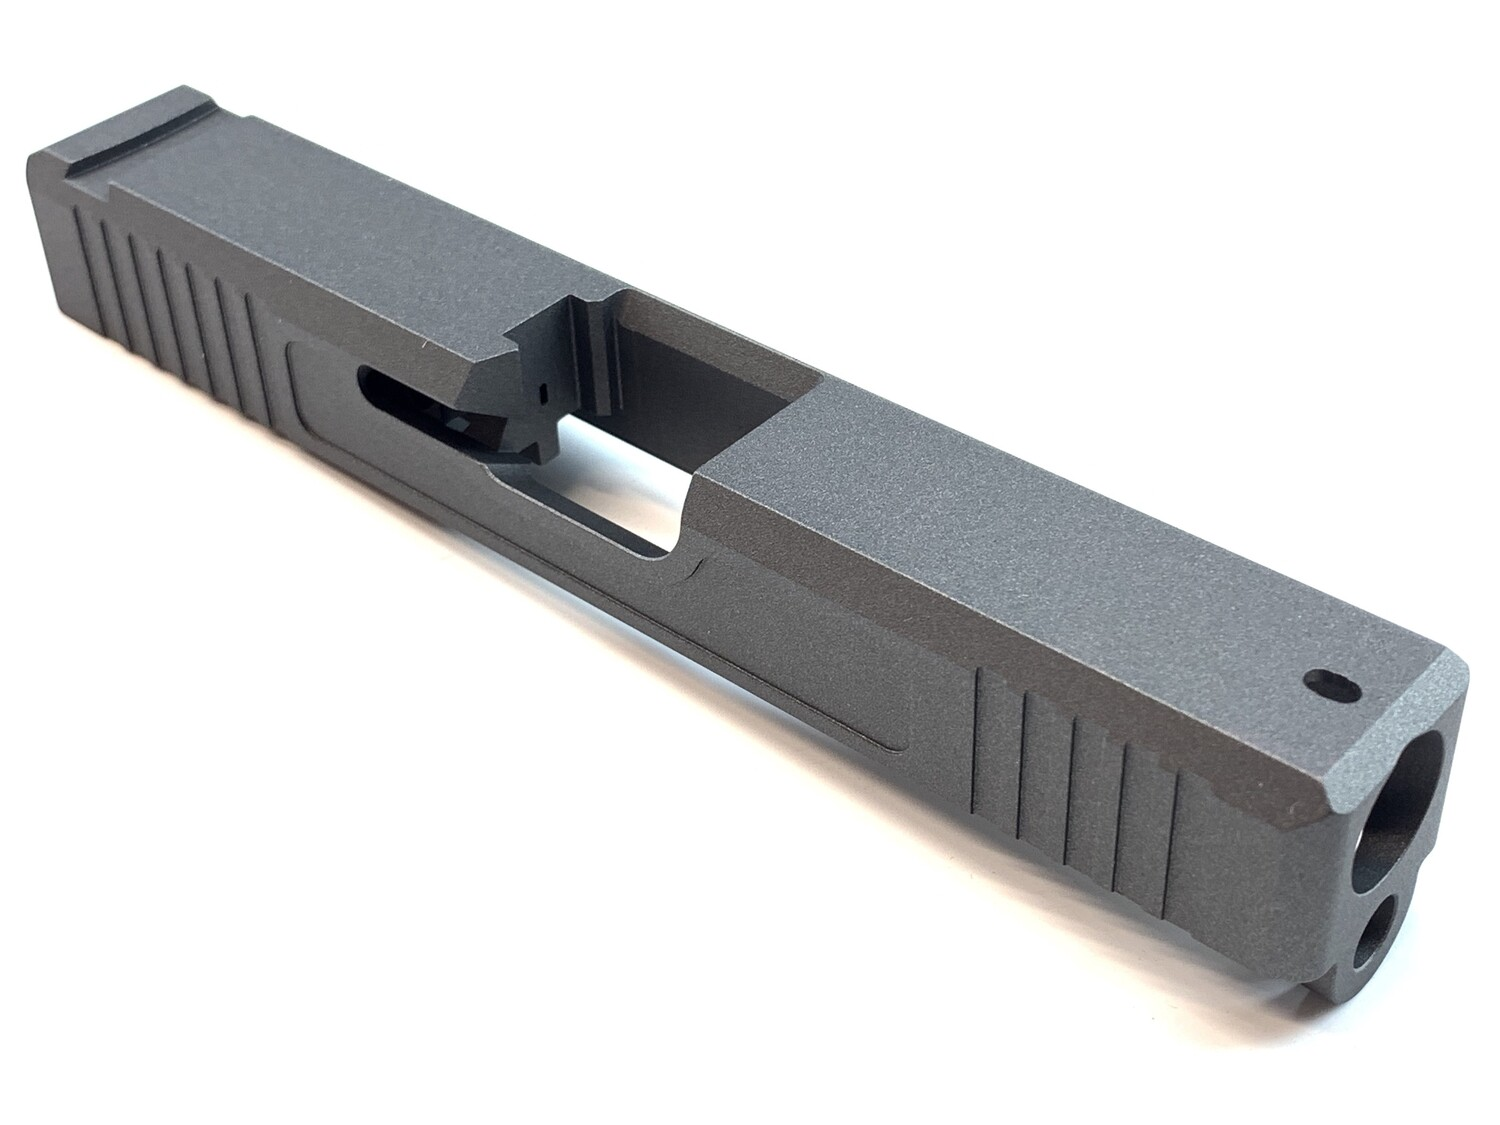 Glock 19 Slide w/ Front & Rear Serrations - Recessed Windows - Tungsten